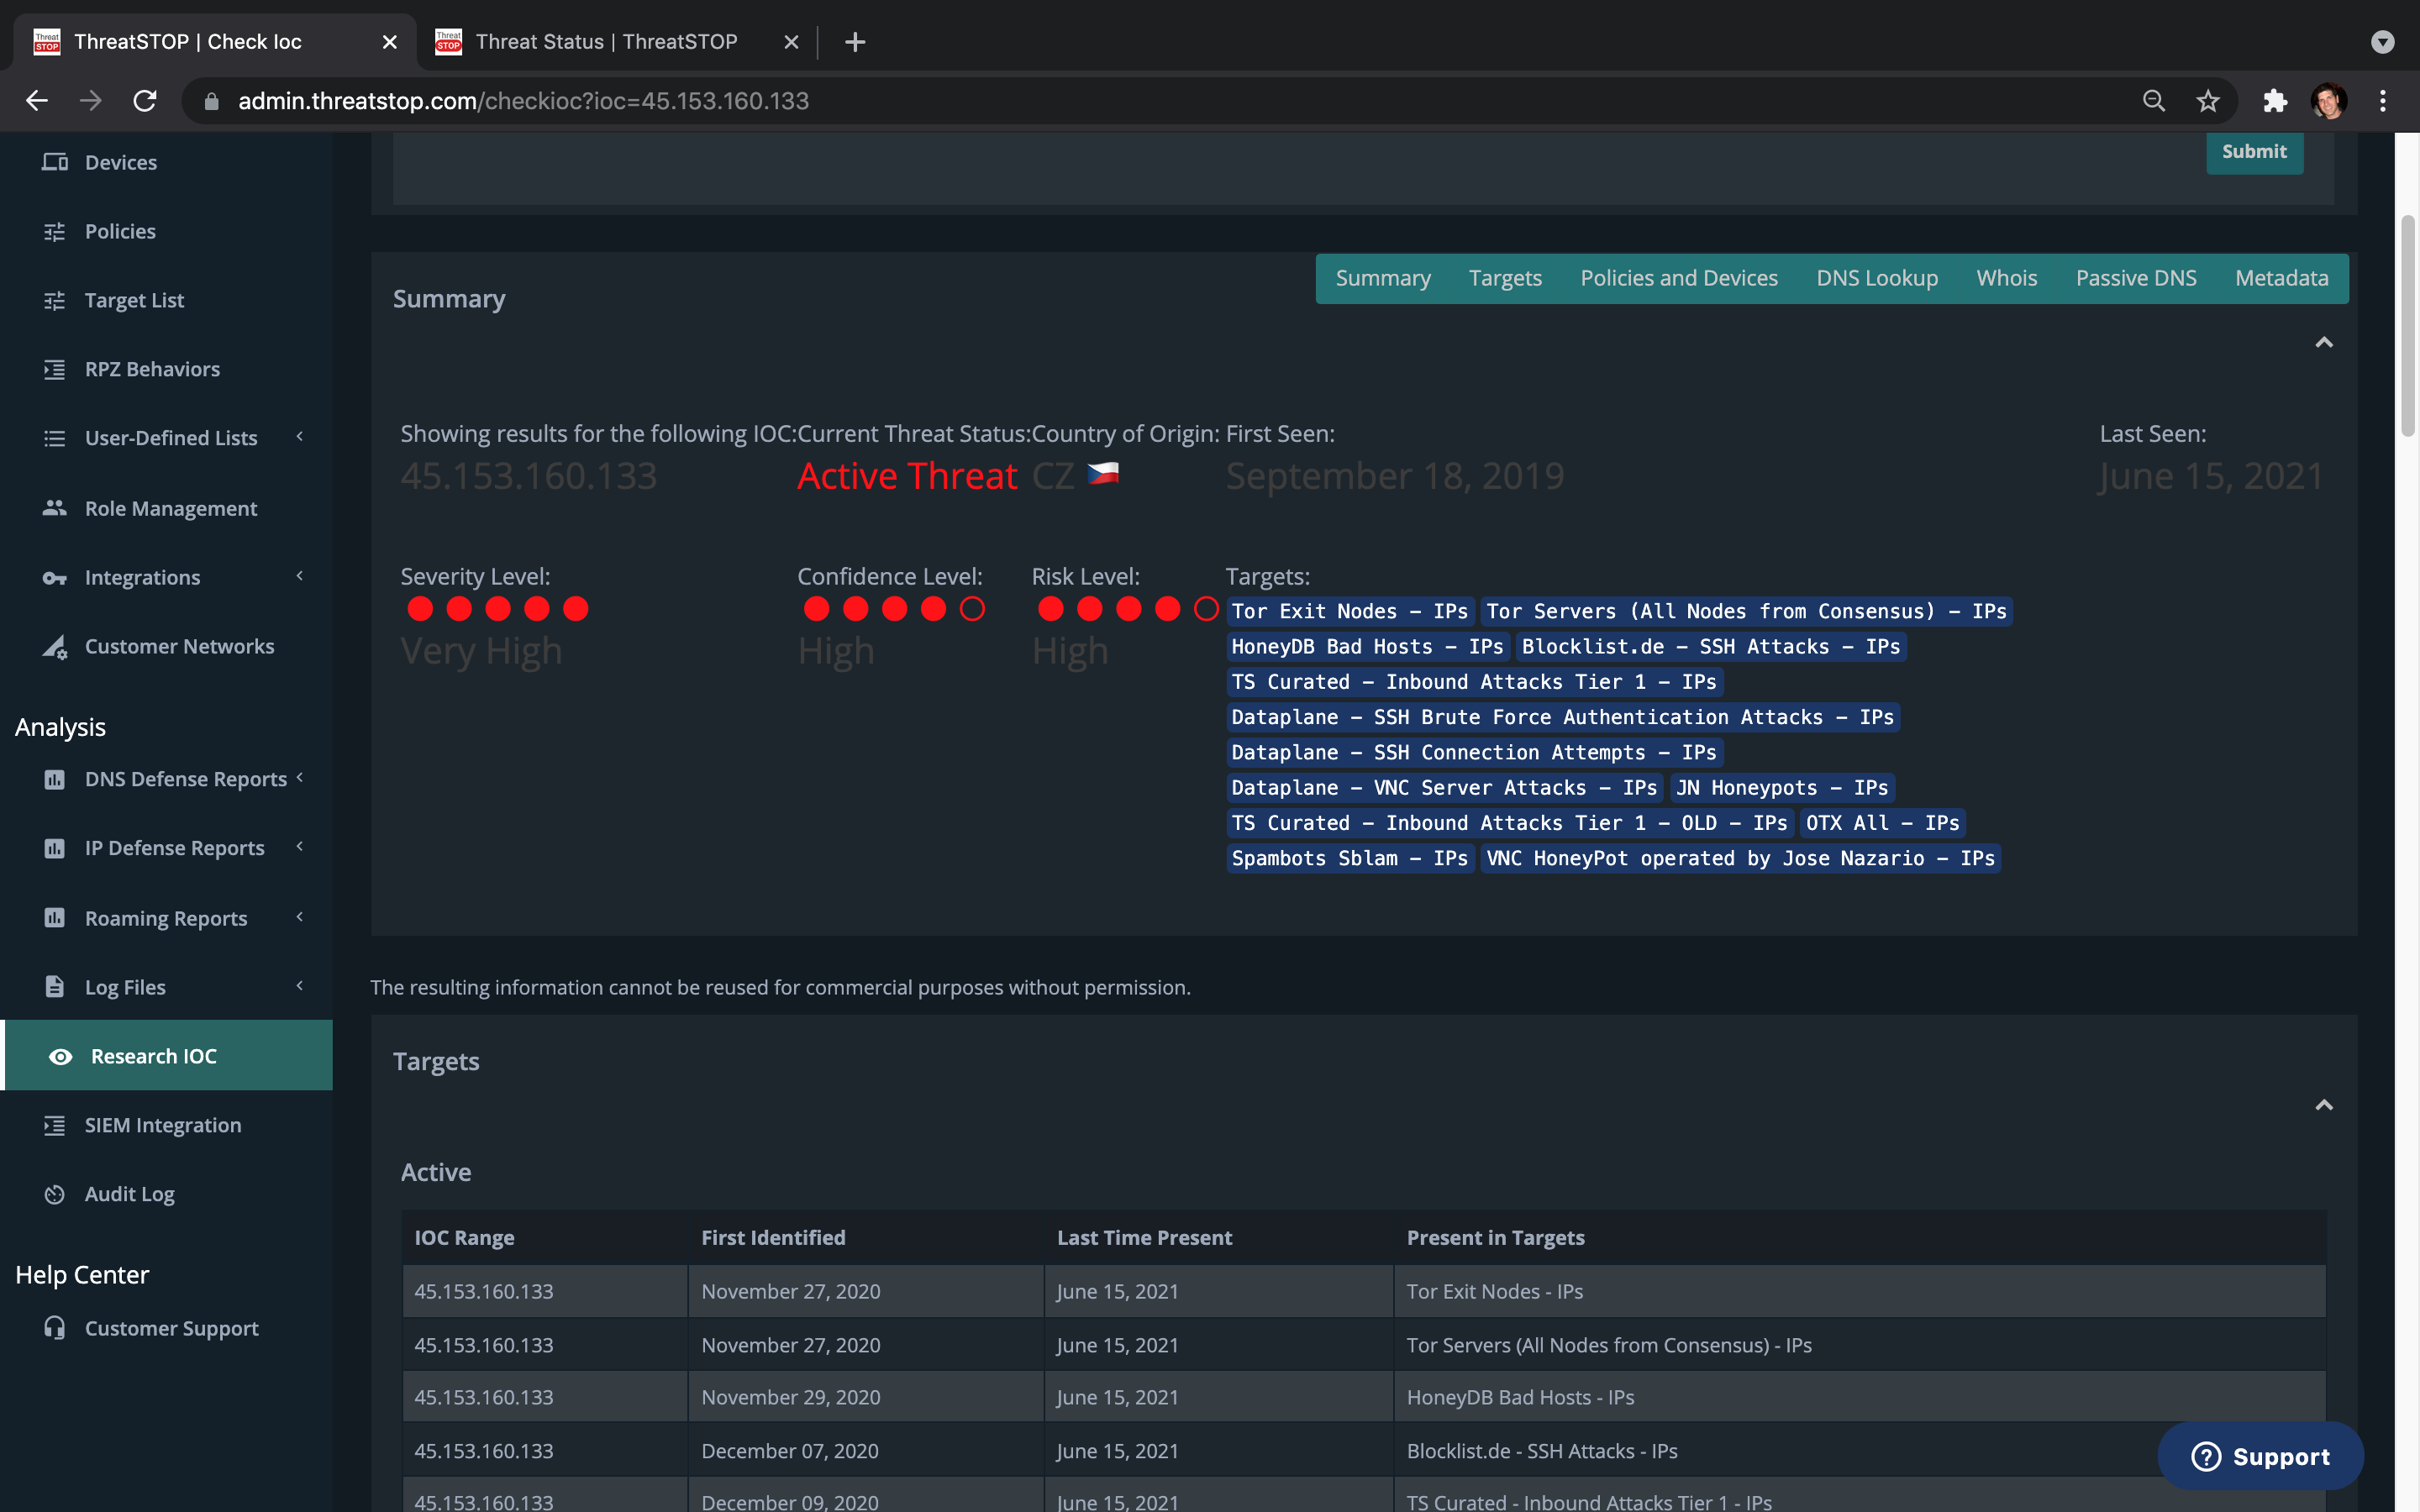 Includes CheckIOC, a powerful security research tool that knows whether any IP or domain is malicious.